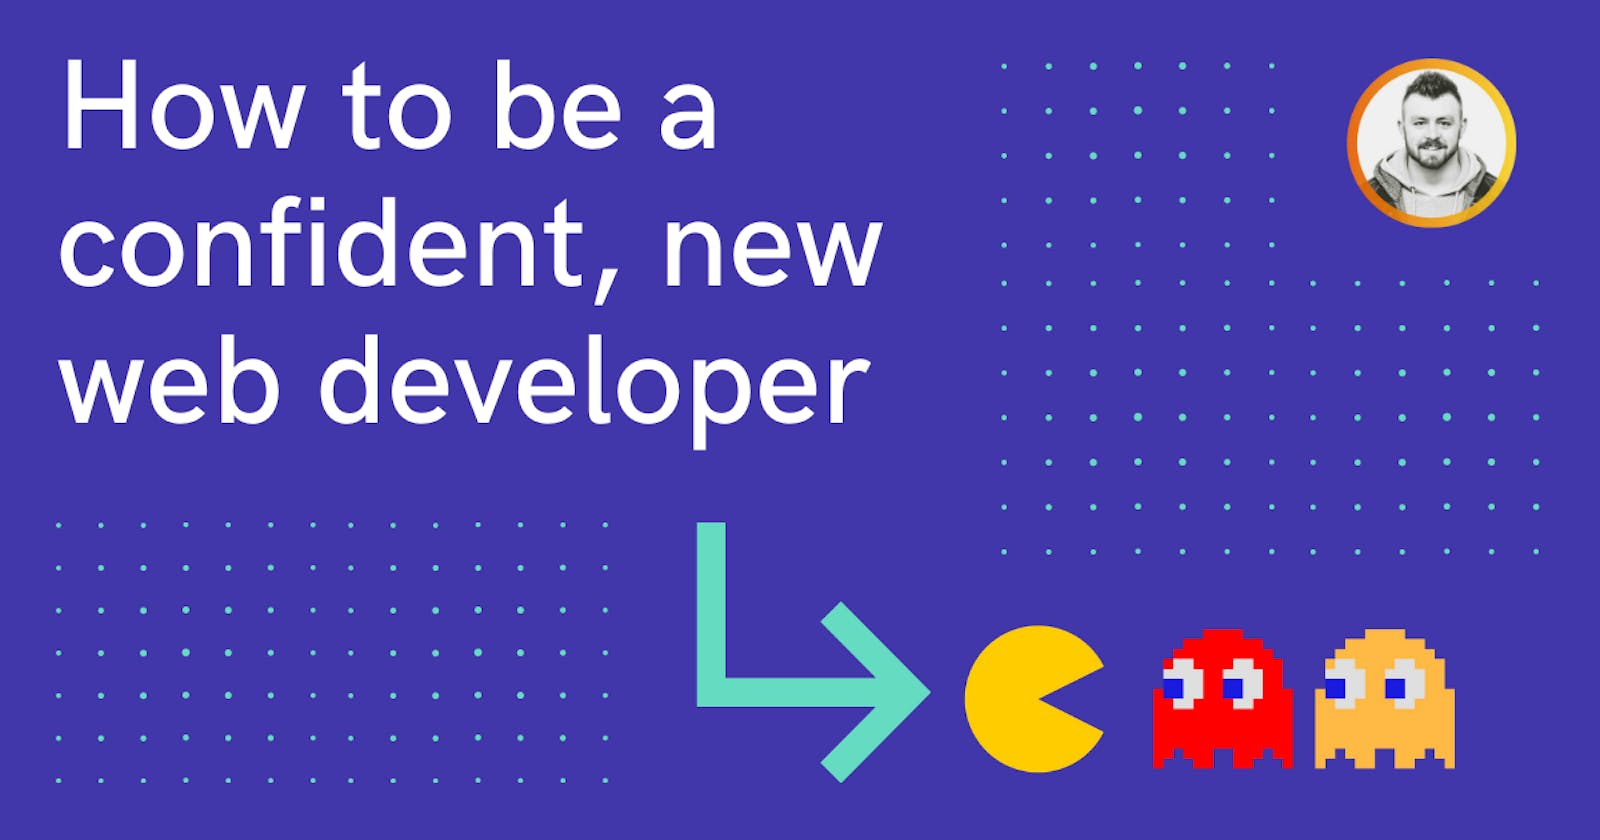 How to be a confident, new web developer